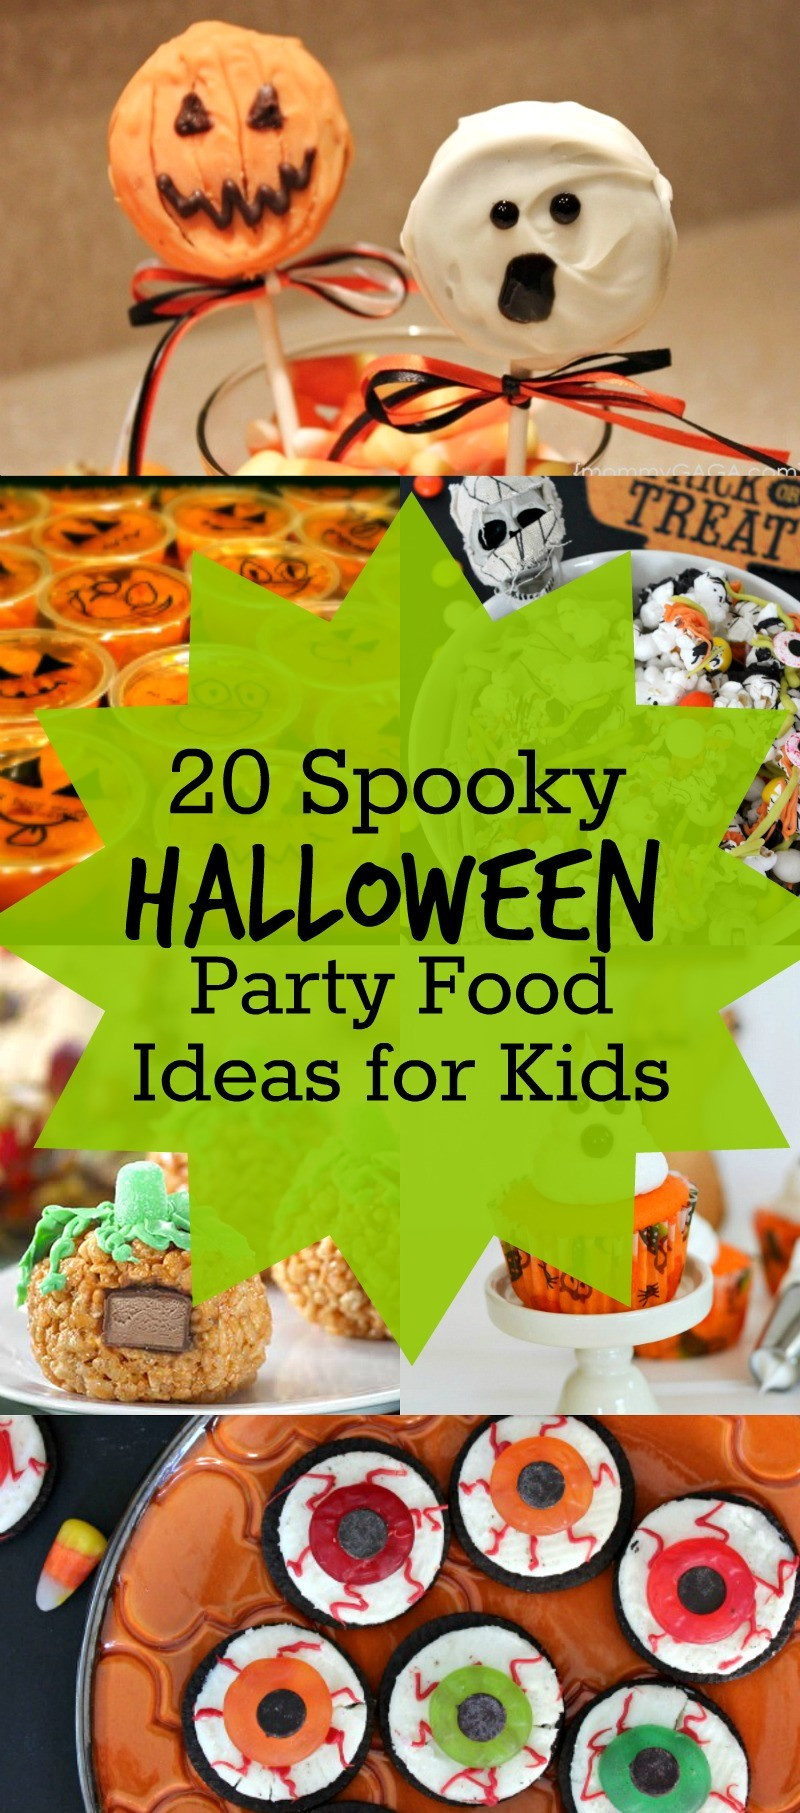 Party Food Ideas For Teenagers  20 Spooky Halloween Party Food Ideas for Kids Such cute